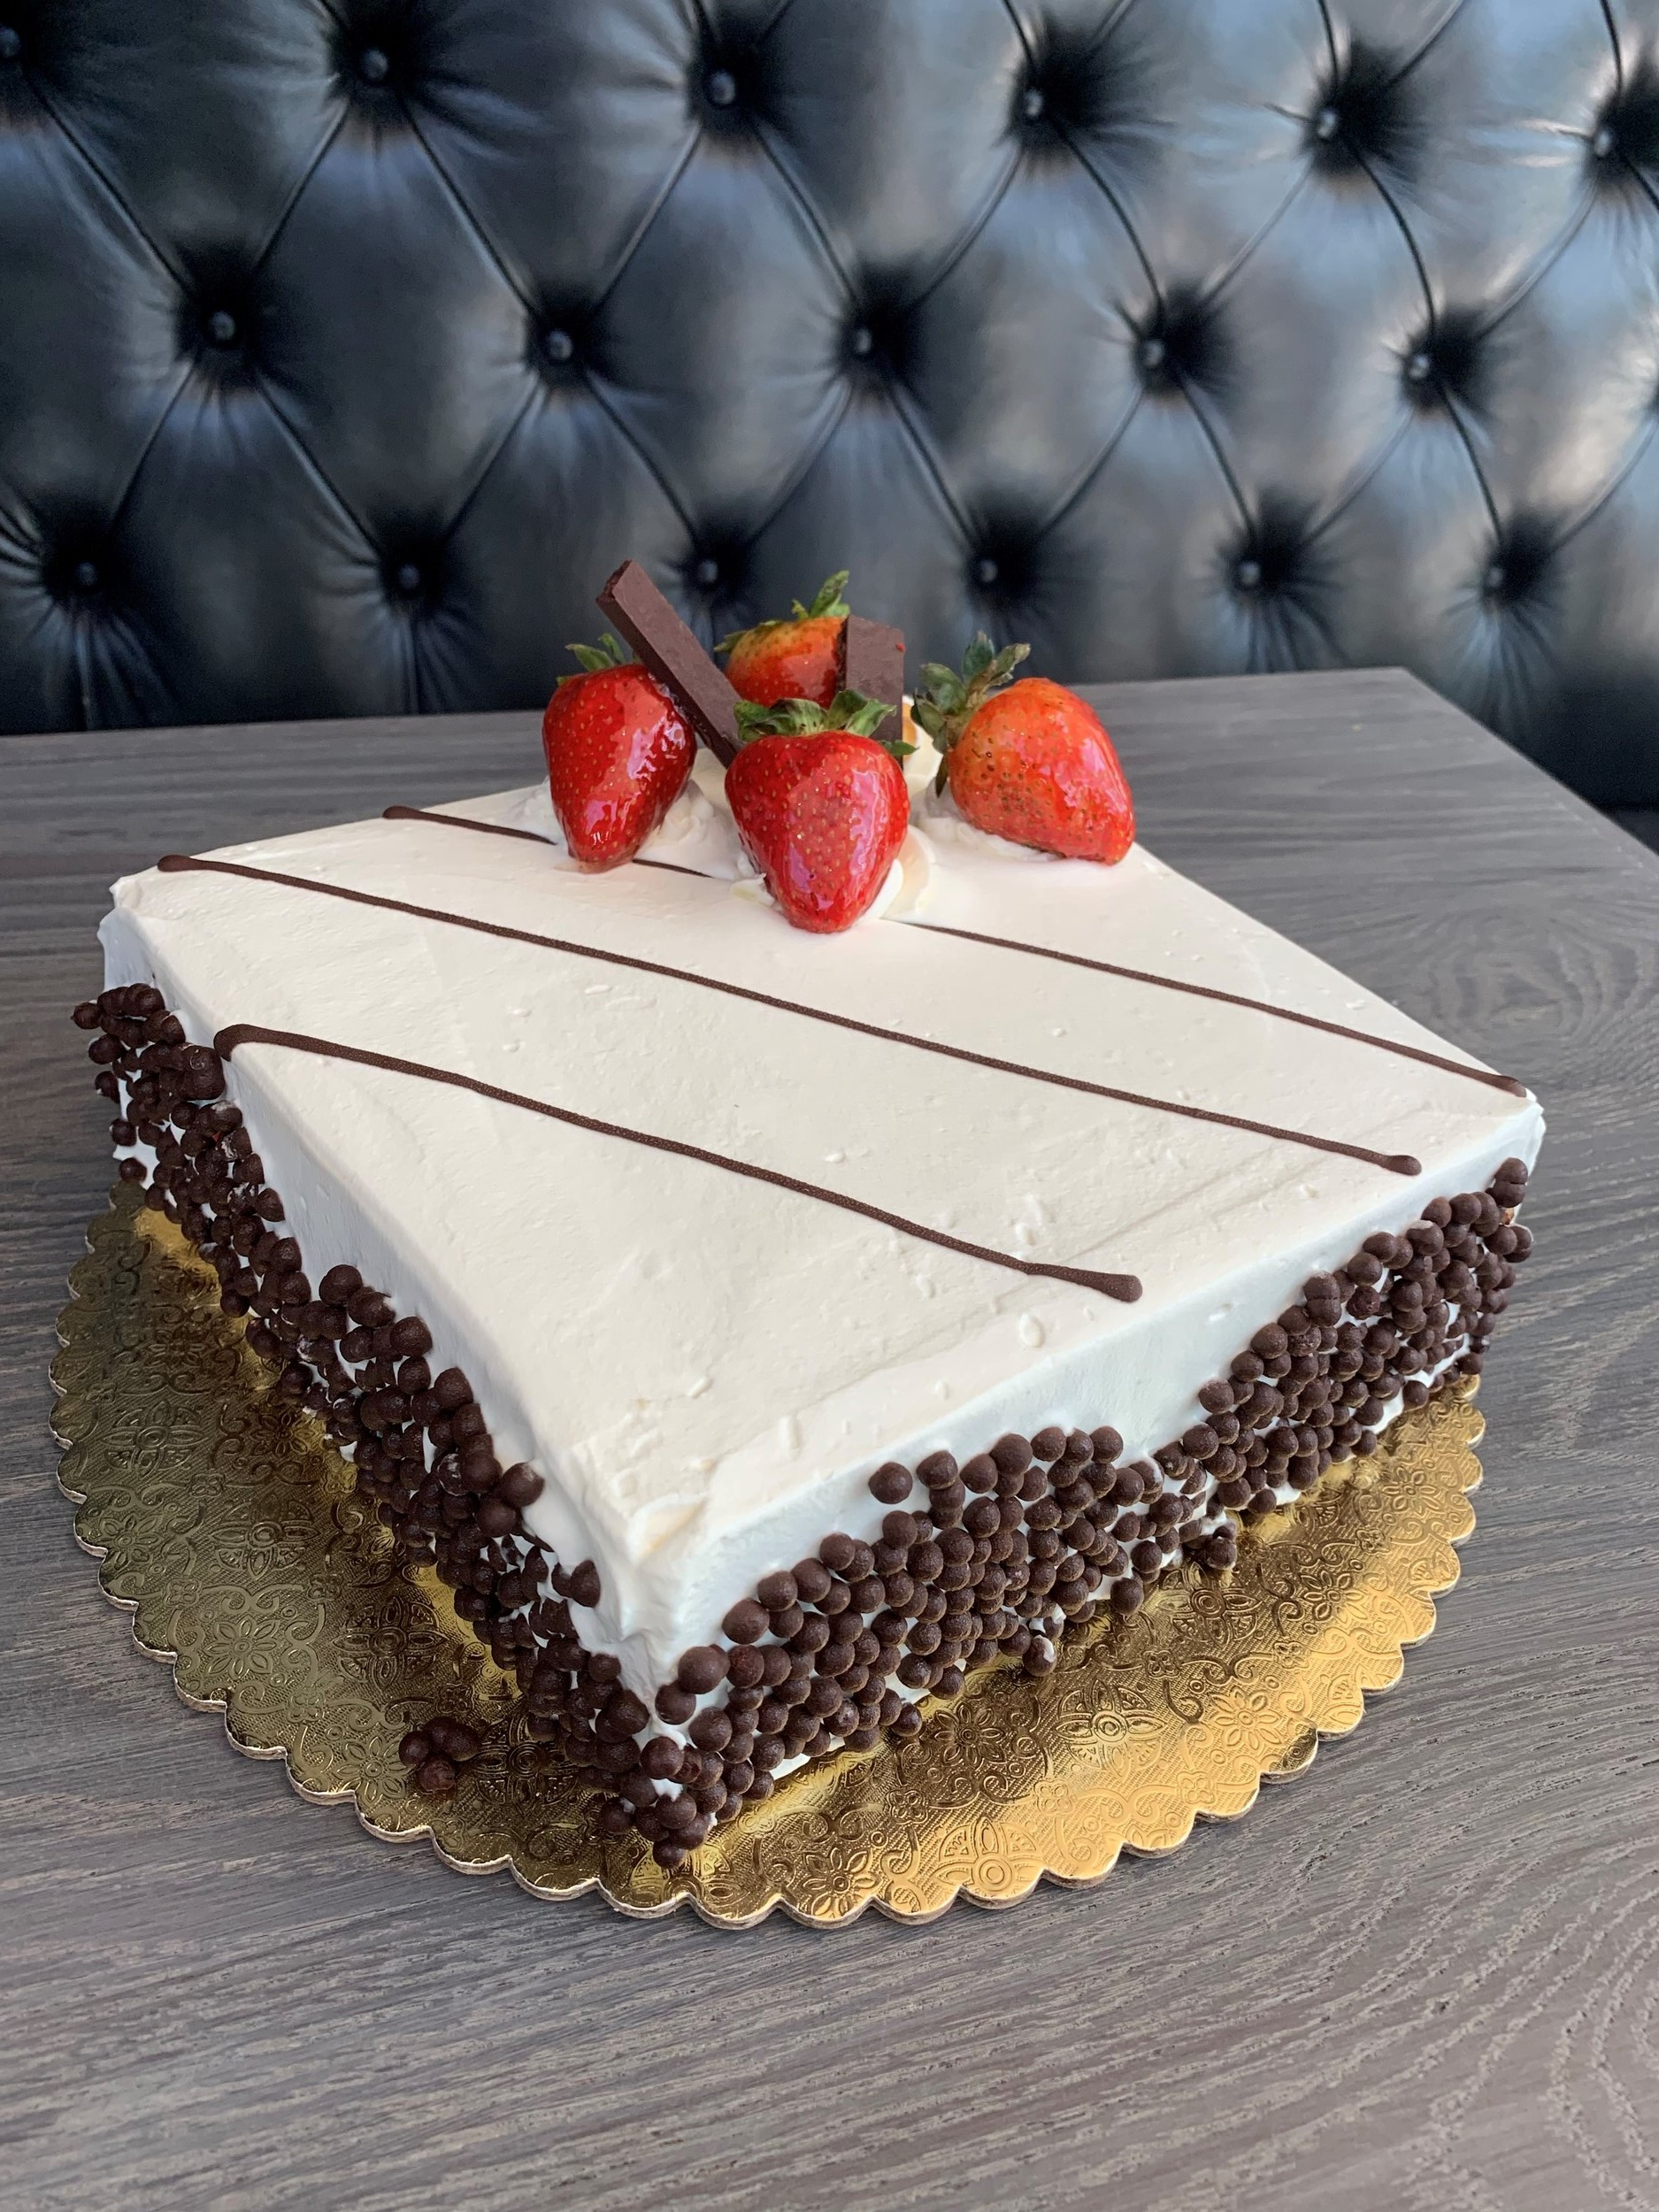 RED VELVET - Three moist layers of stunning red velvet filled and topped silky cream cheese icing and white chocolate crust$35